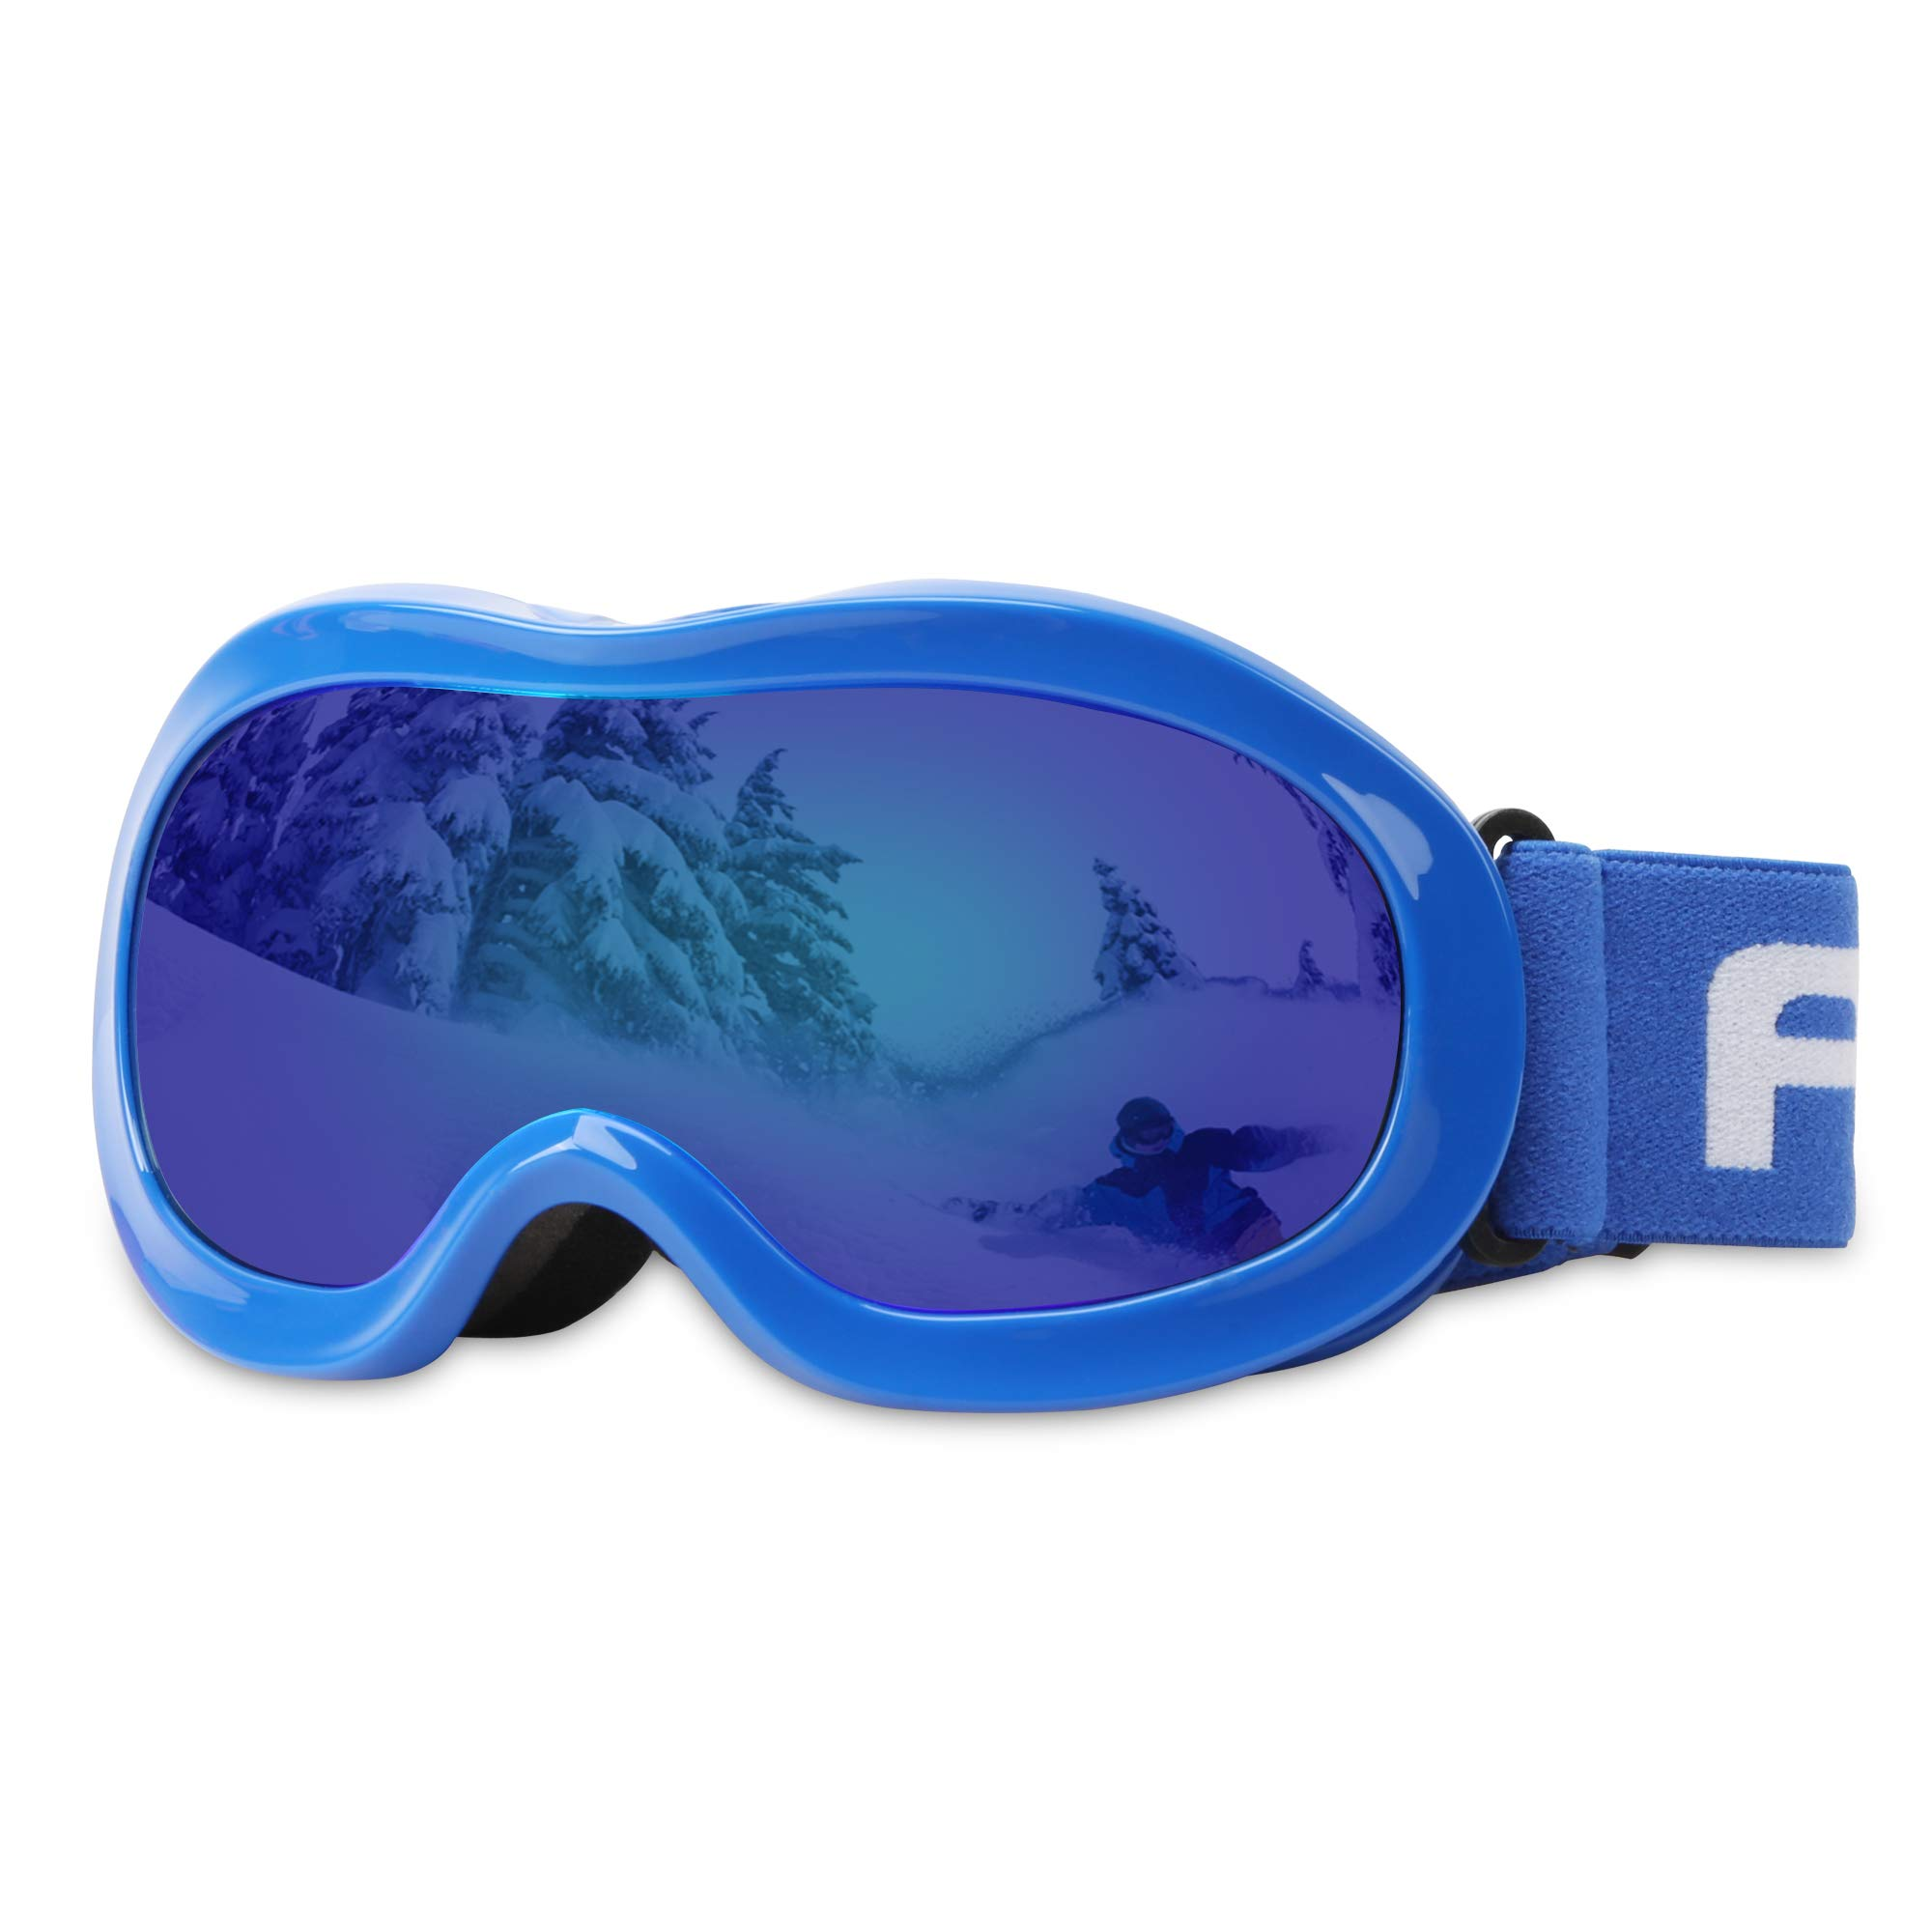 37b8eda1e5d2 Best Rated in Snow Sports Goggles   Helpful Customer Reviews ...